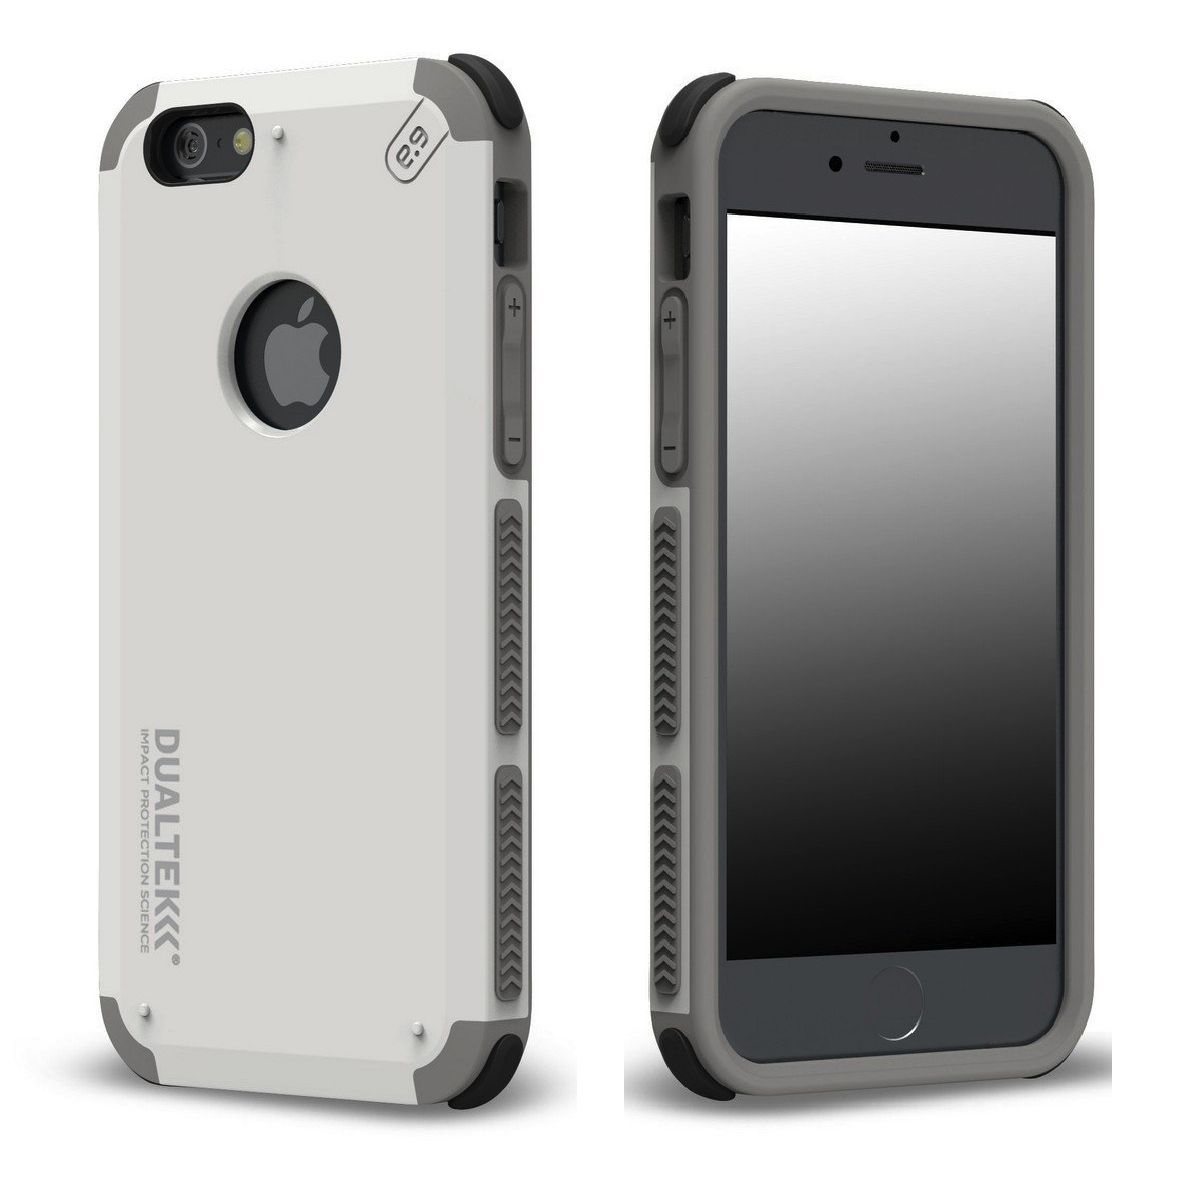 online store c7c33 10a63 iPhone 6 6S Puregear Dualtek Case | buytec.co.uk